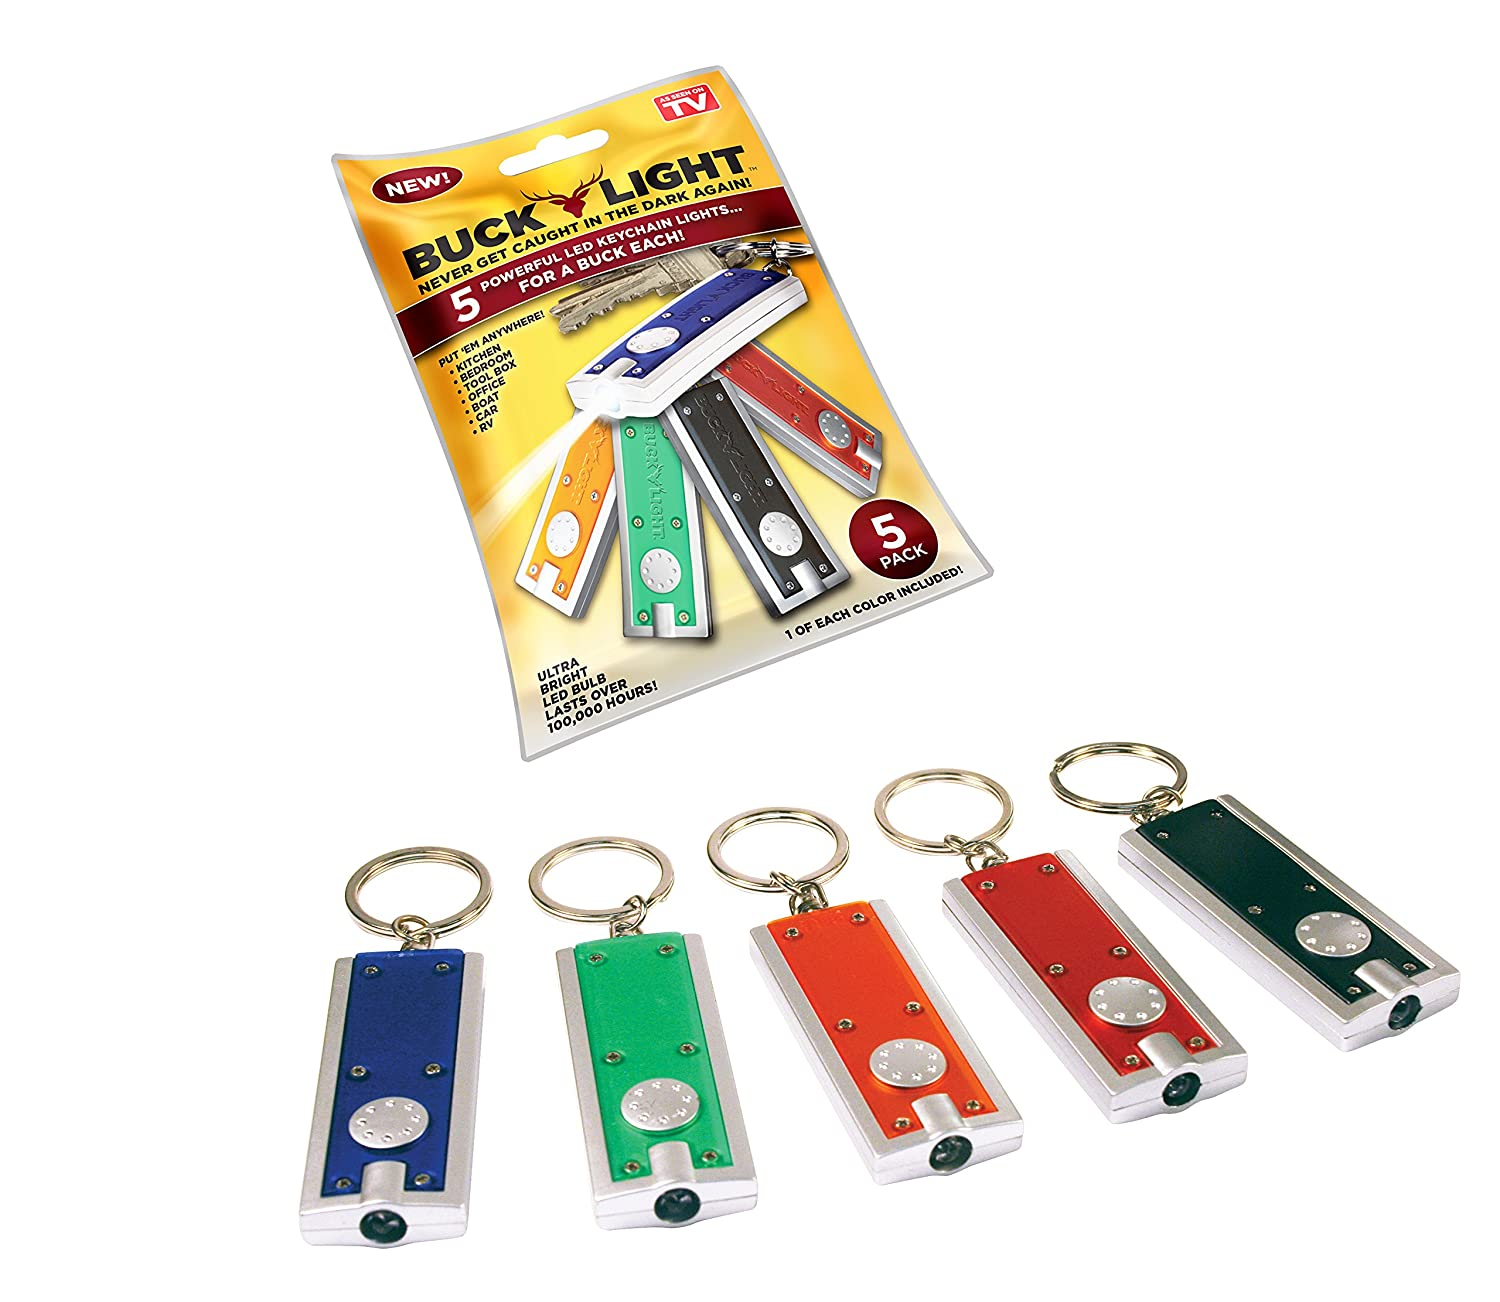 Buck Light: Powerful LED Keychain Lights, 5 Pack, Assorted Colors, Ultra Bright Flashlight, Portable Key Chain Flash Light